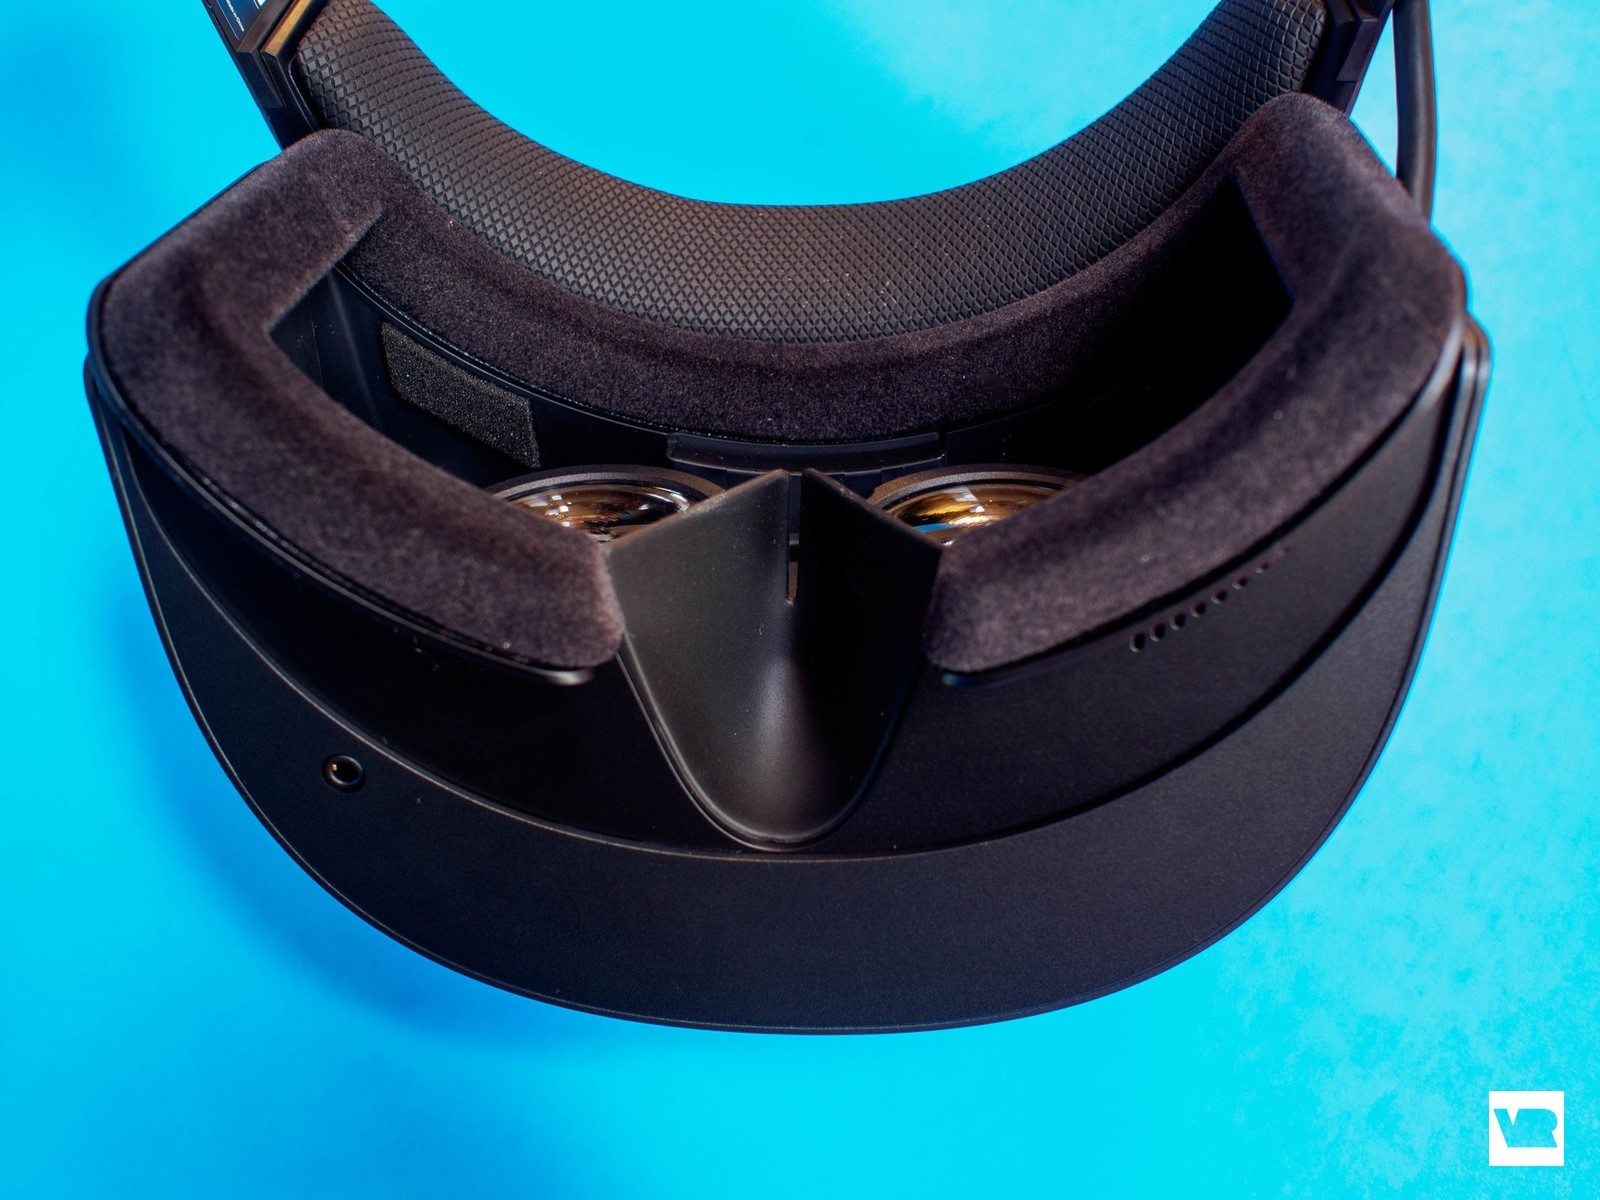 HP Mixed Reality Nose Padding